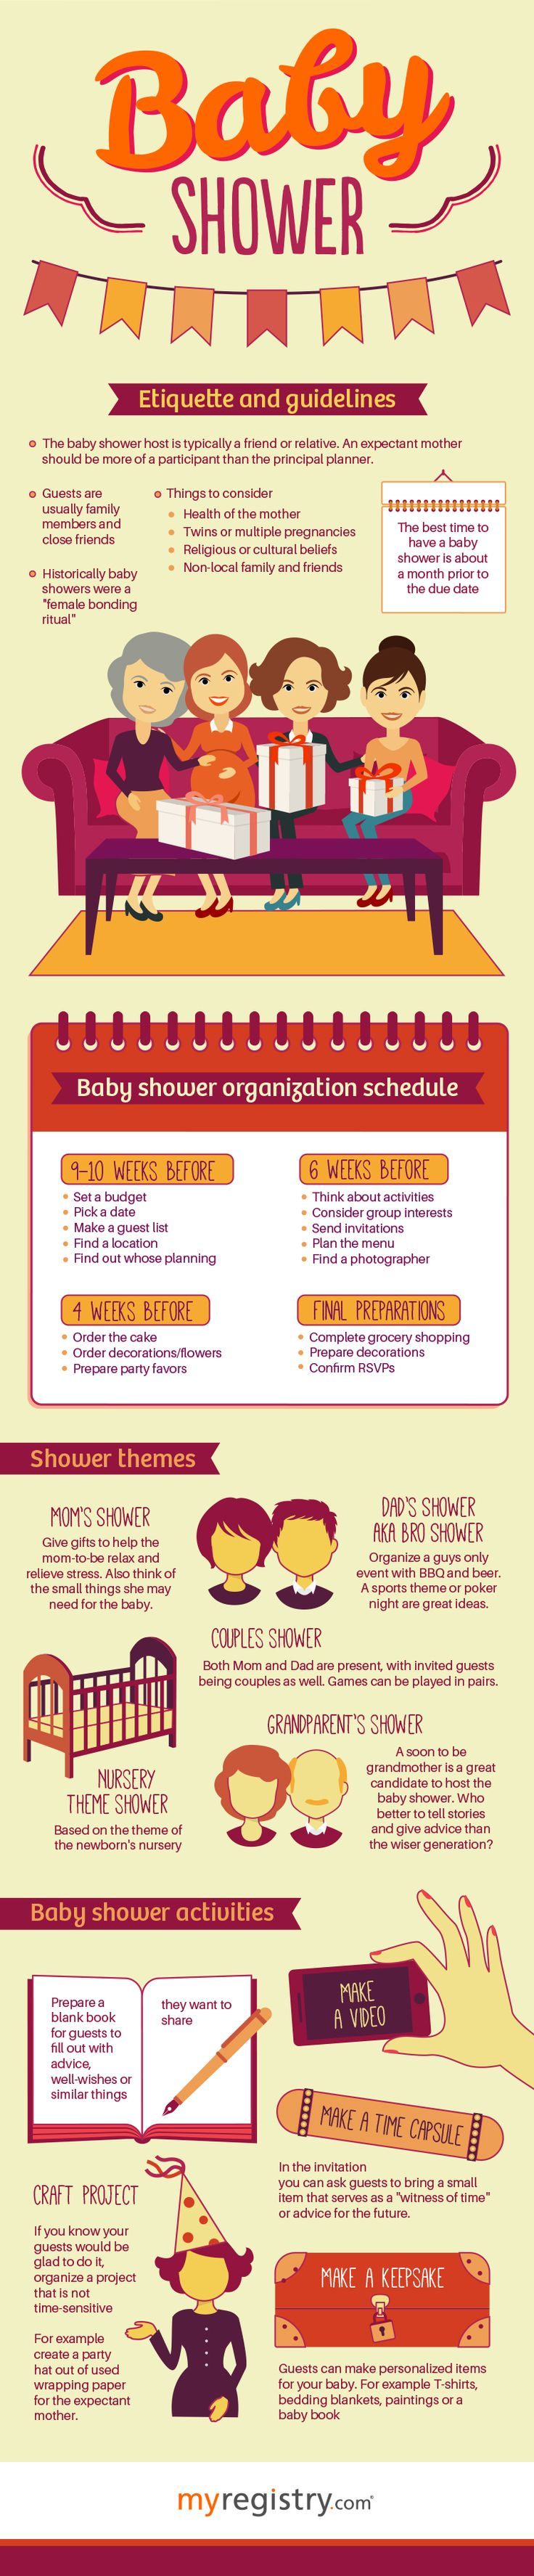 Baby Shower Etiquette and Guidelines